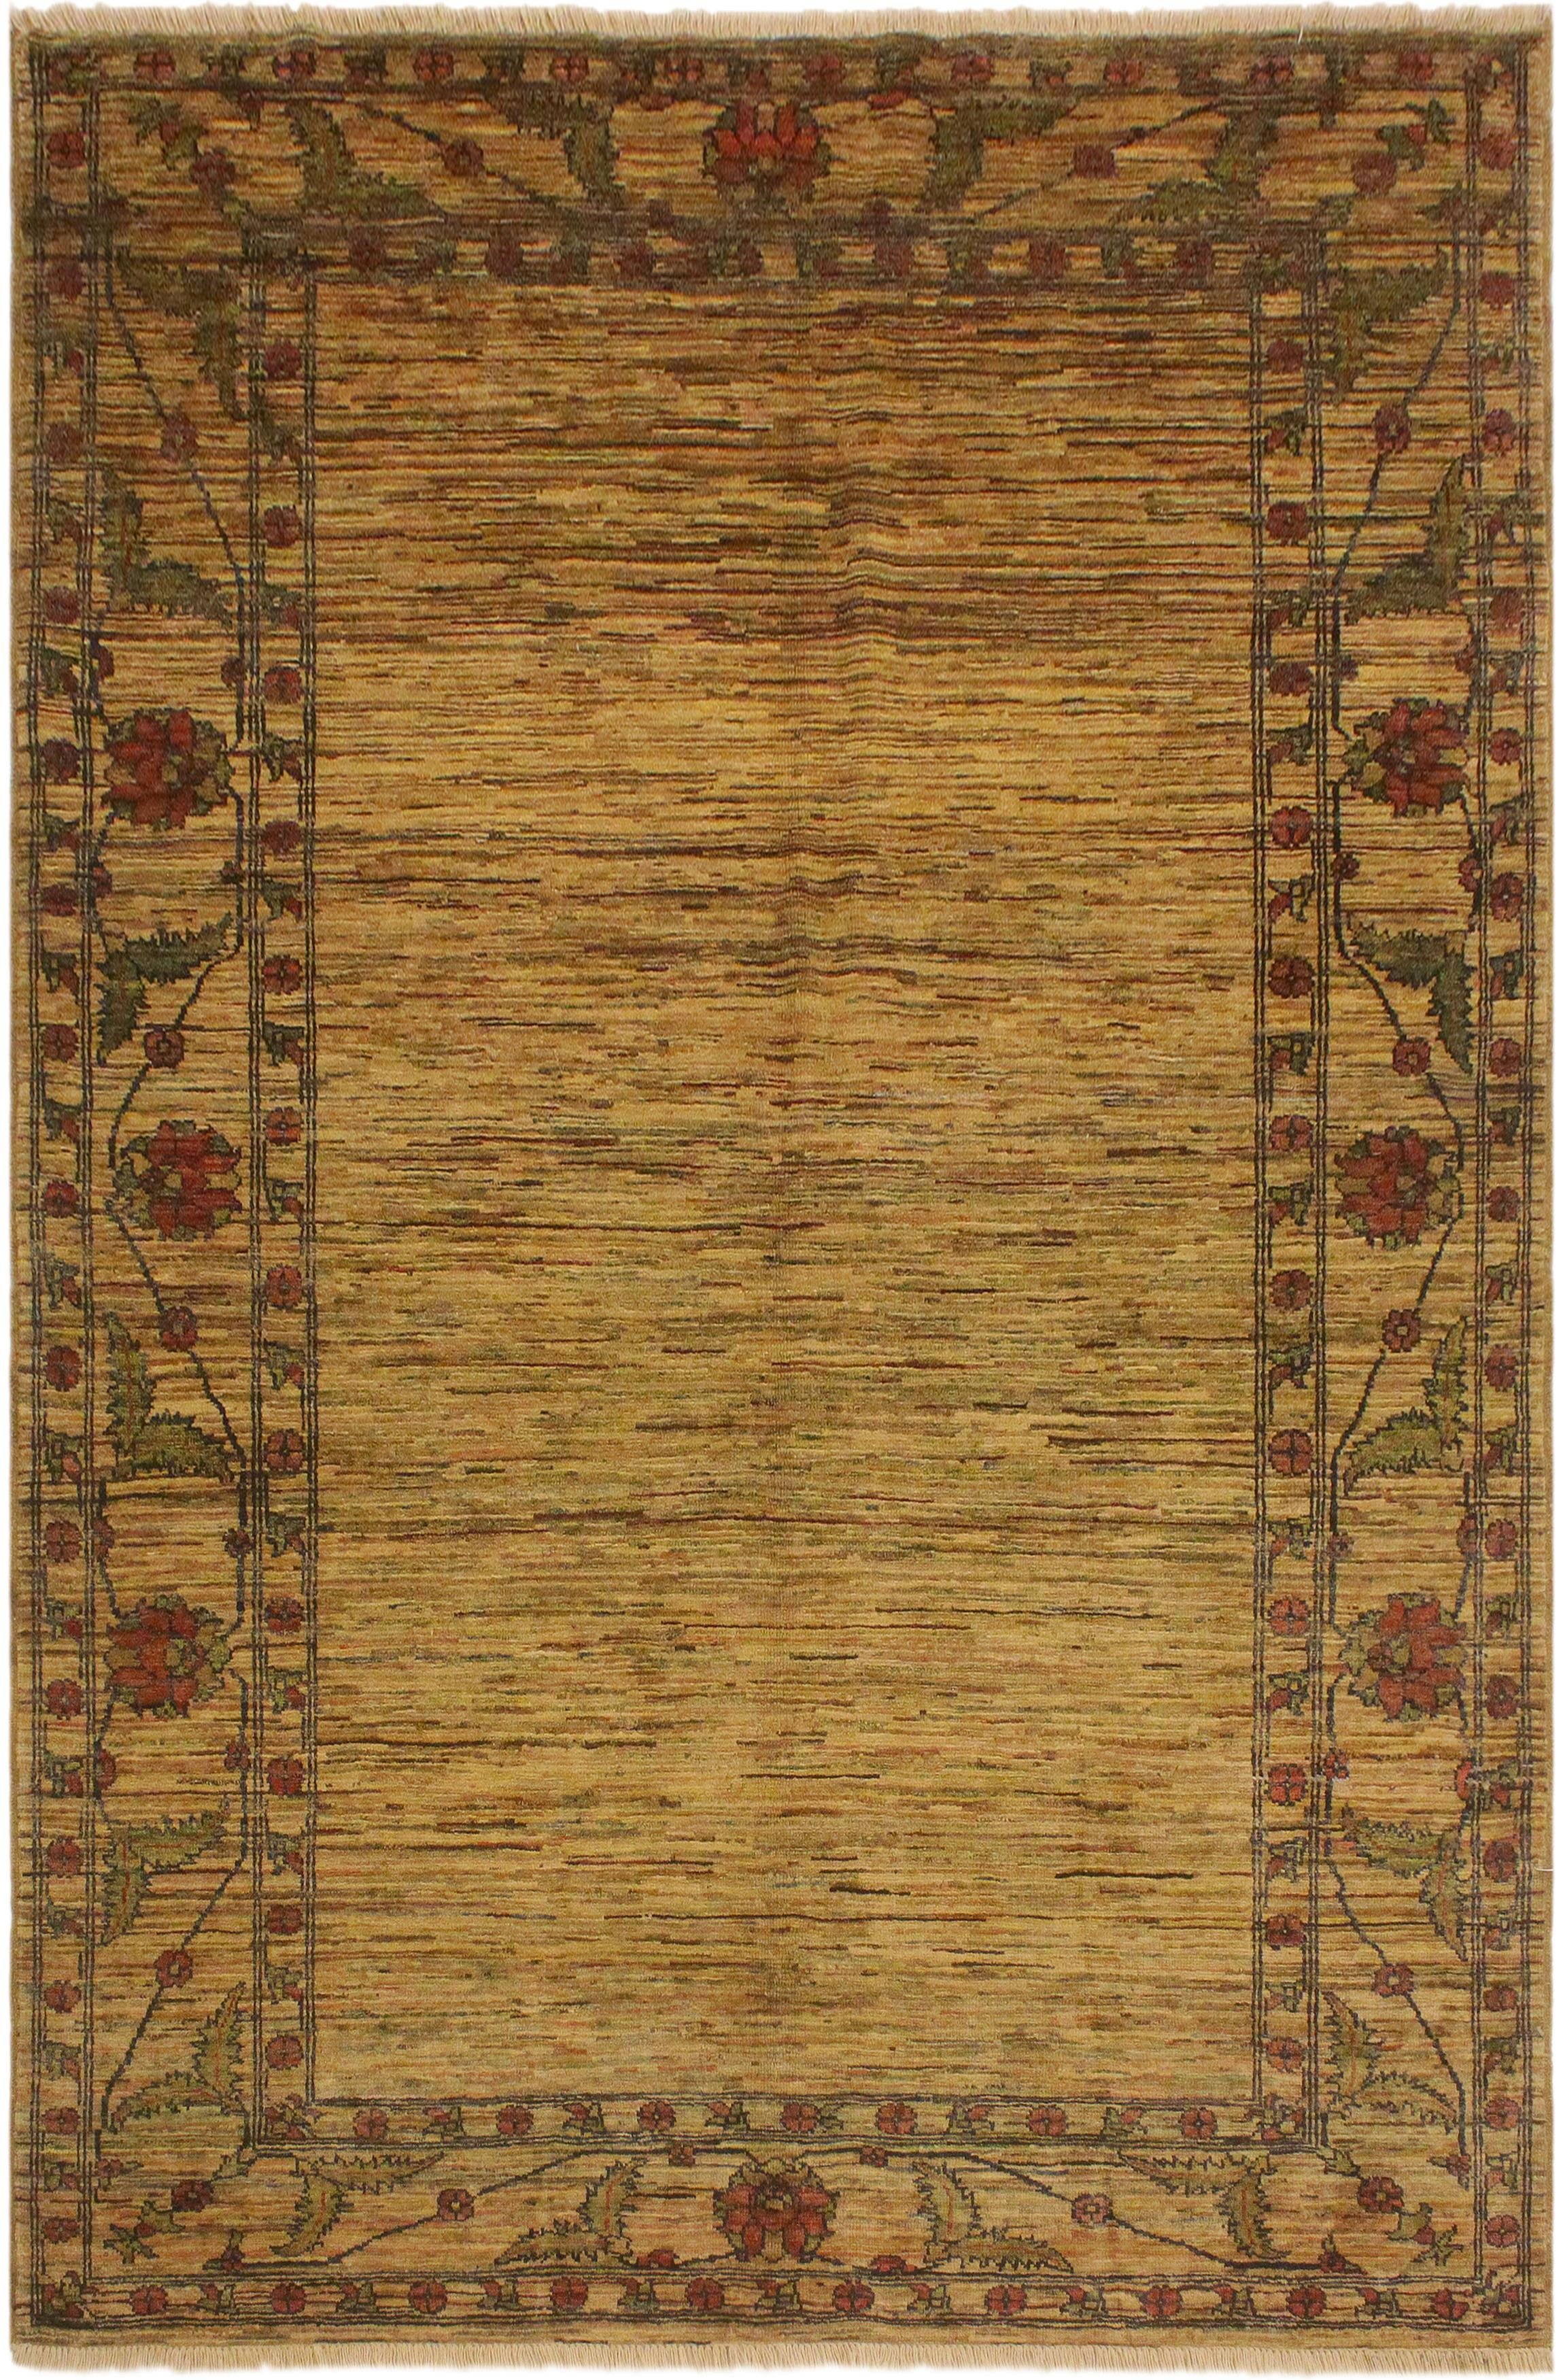 Arshs Fine Rugs Gabbeh David Tan/Red Wool Area Rug